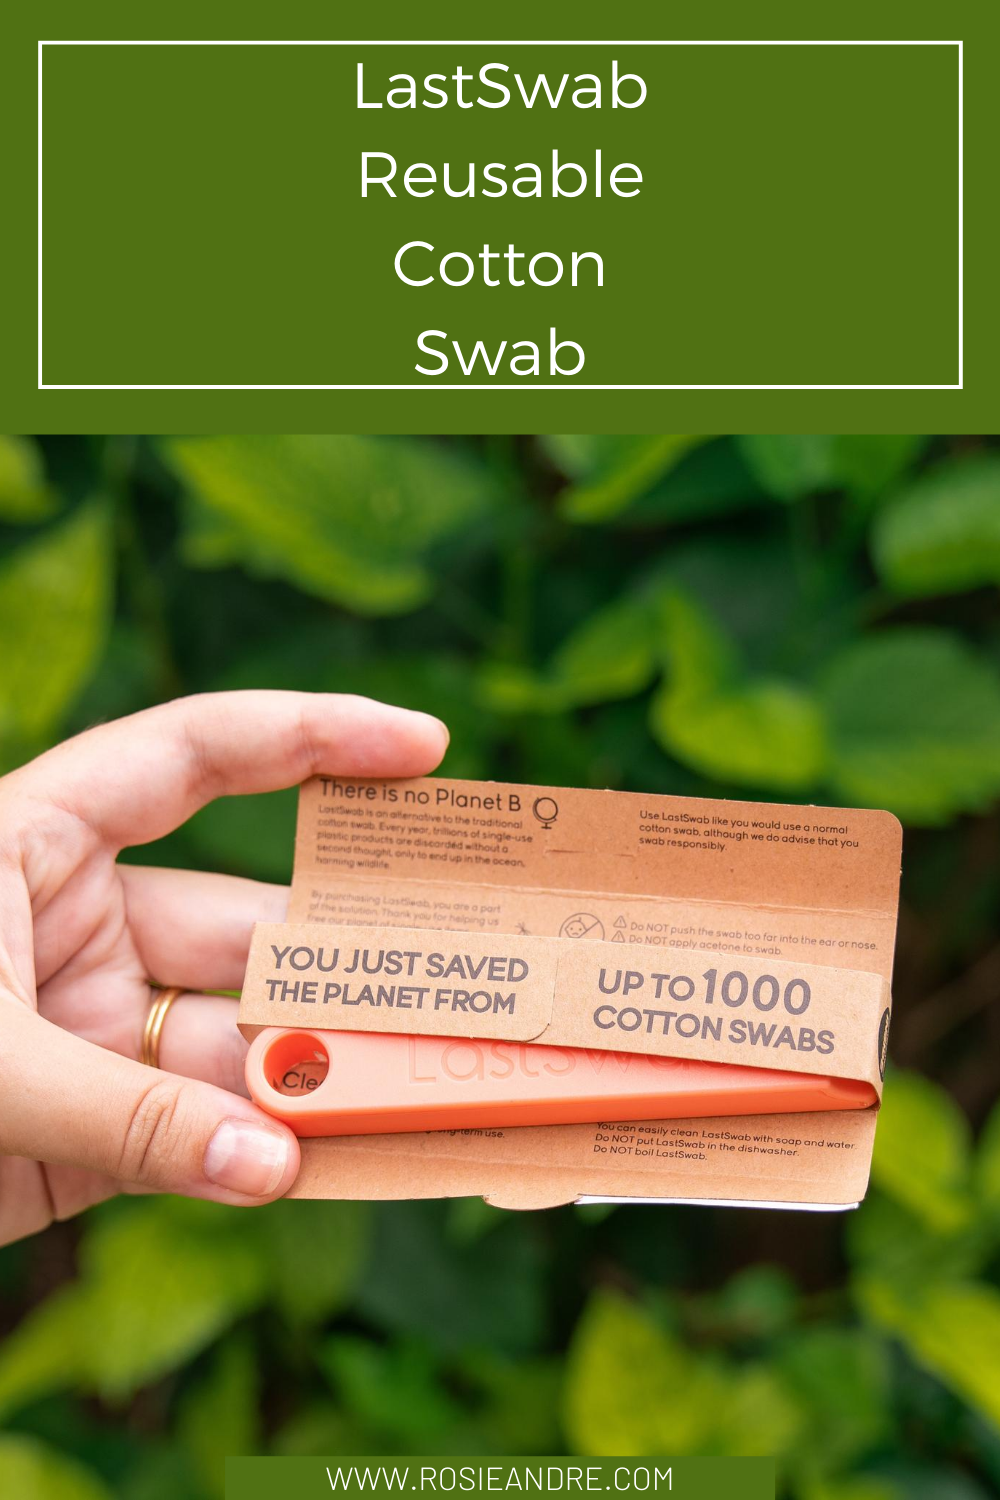 Rosie Andre - LastSwab (Reusable cotton swabs, eco friendly beauty, eco friendly home, eco friendly product, sustainable beauty, sustainable product, sustainable home, no more single use plastic, lastobject, eco friendly, sustainability)